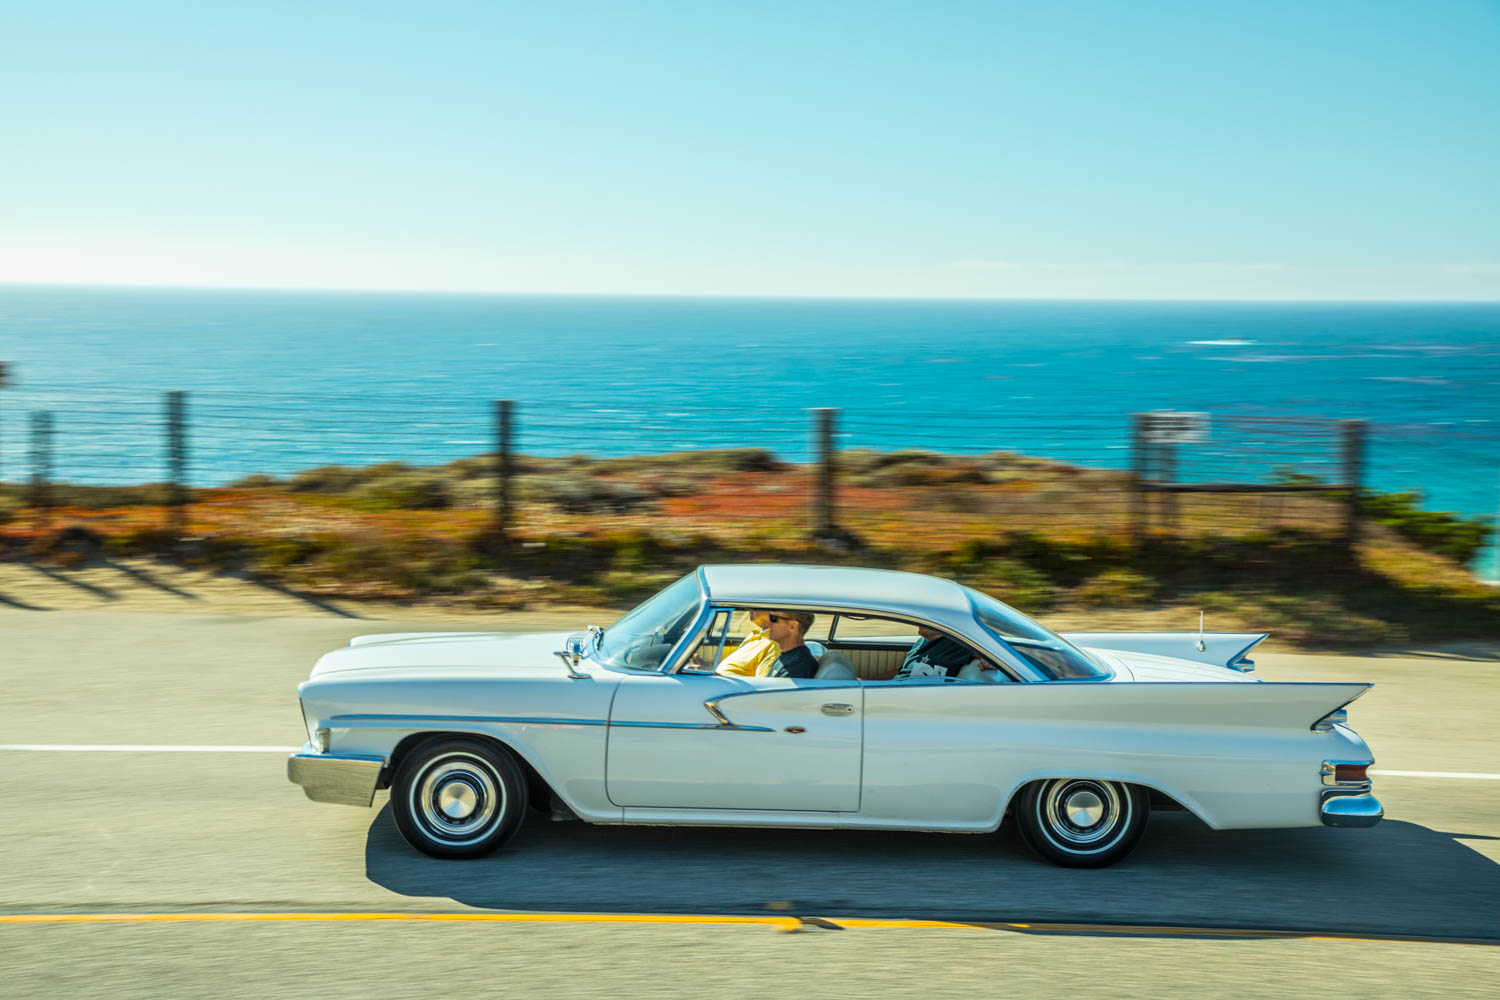 """The """"Full Size Chrysler in the New, Lower Price Range"""" wings its way down California's Pacific Coast Highway, moving our aging travelers in both space and time."""